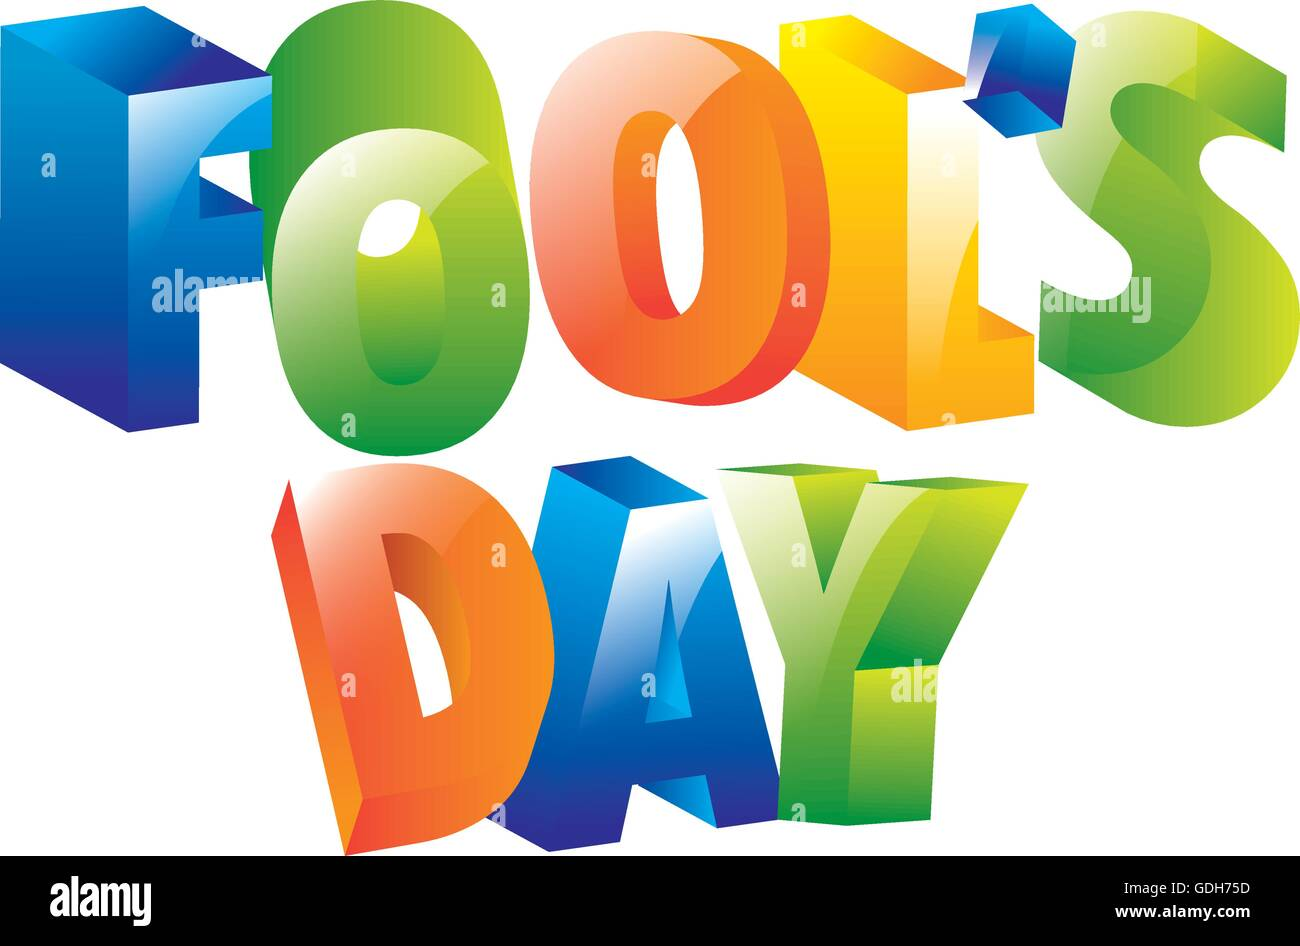 fools day icon - Stock Vector